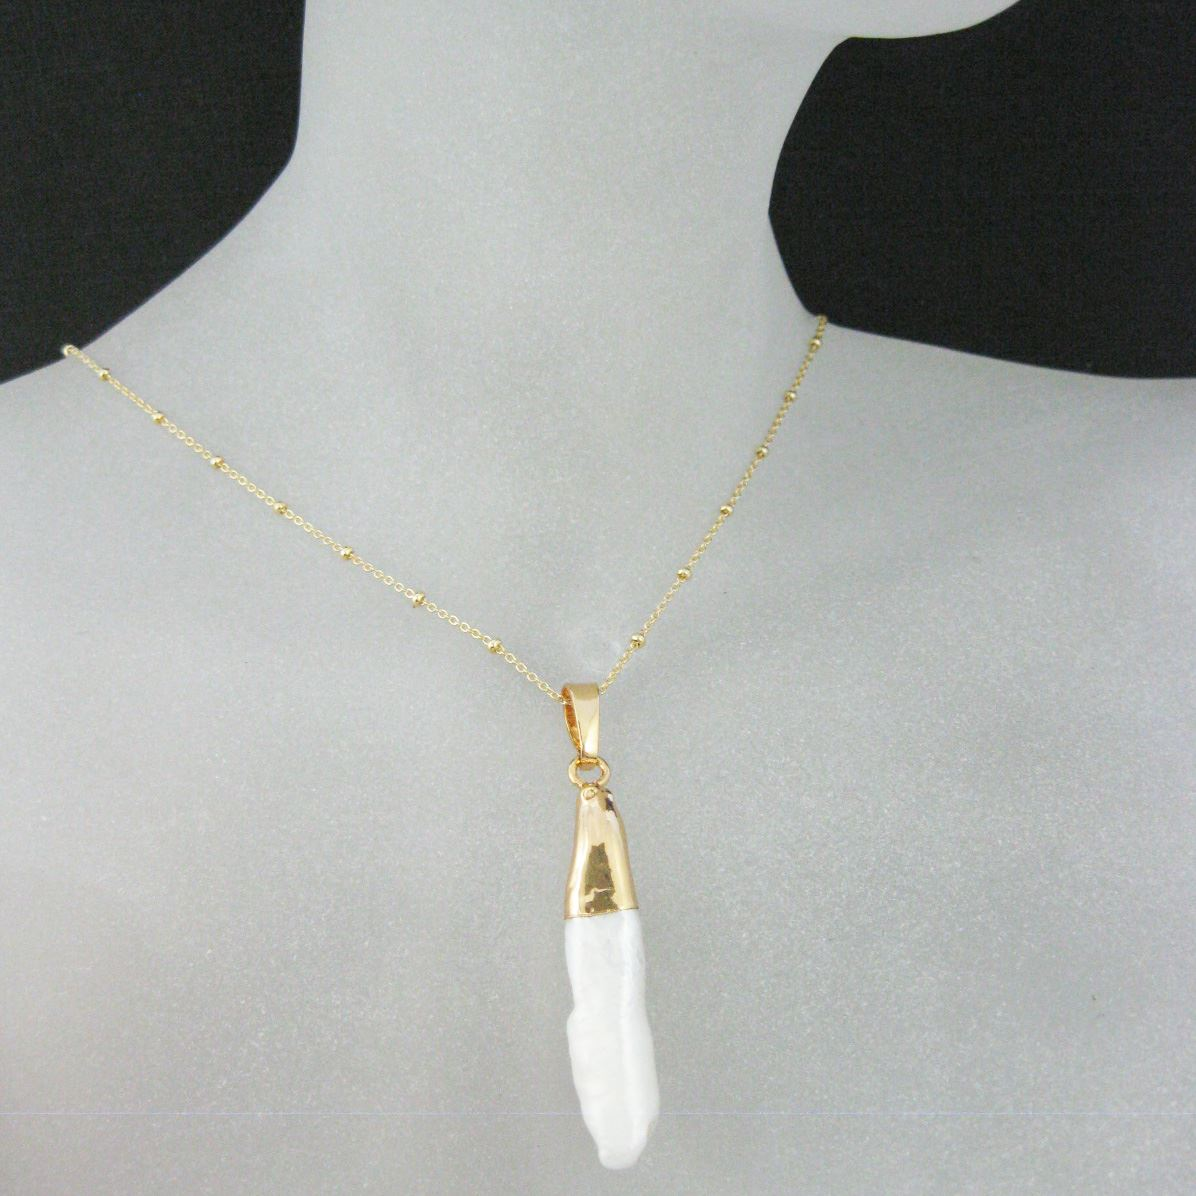 Mother of Pearl Necklace - Natural Mother of Pearl Elongated Pendant Necklace-Gold plated Sterling Silver Beaded Necklace Chain